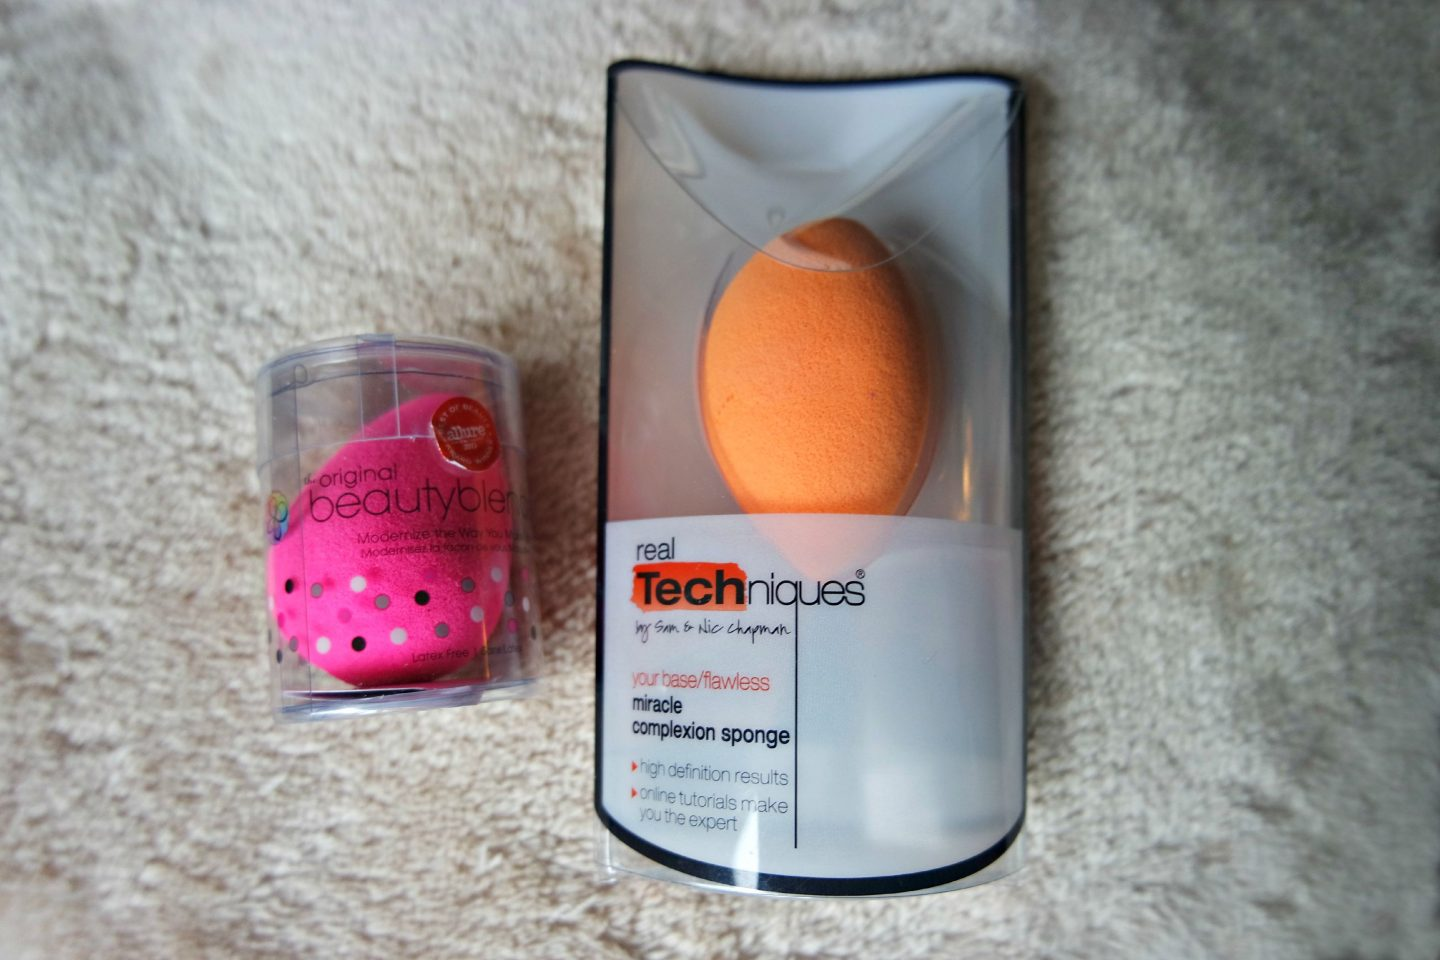 Original Beautyblender vs Real Techniques Miracle Complexion Sponge